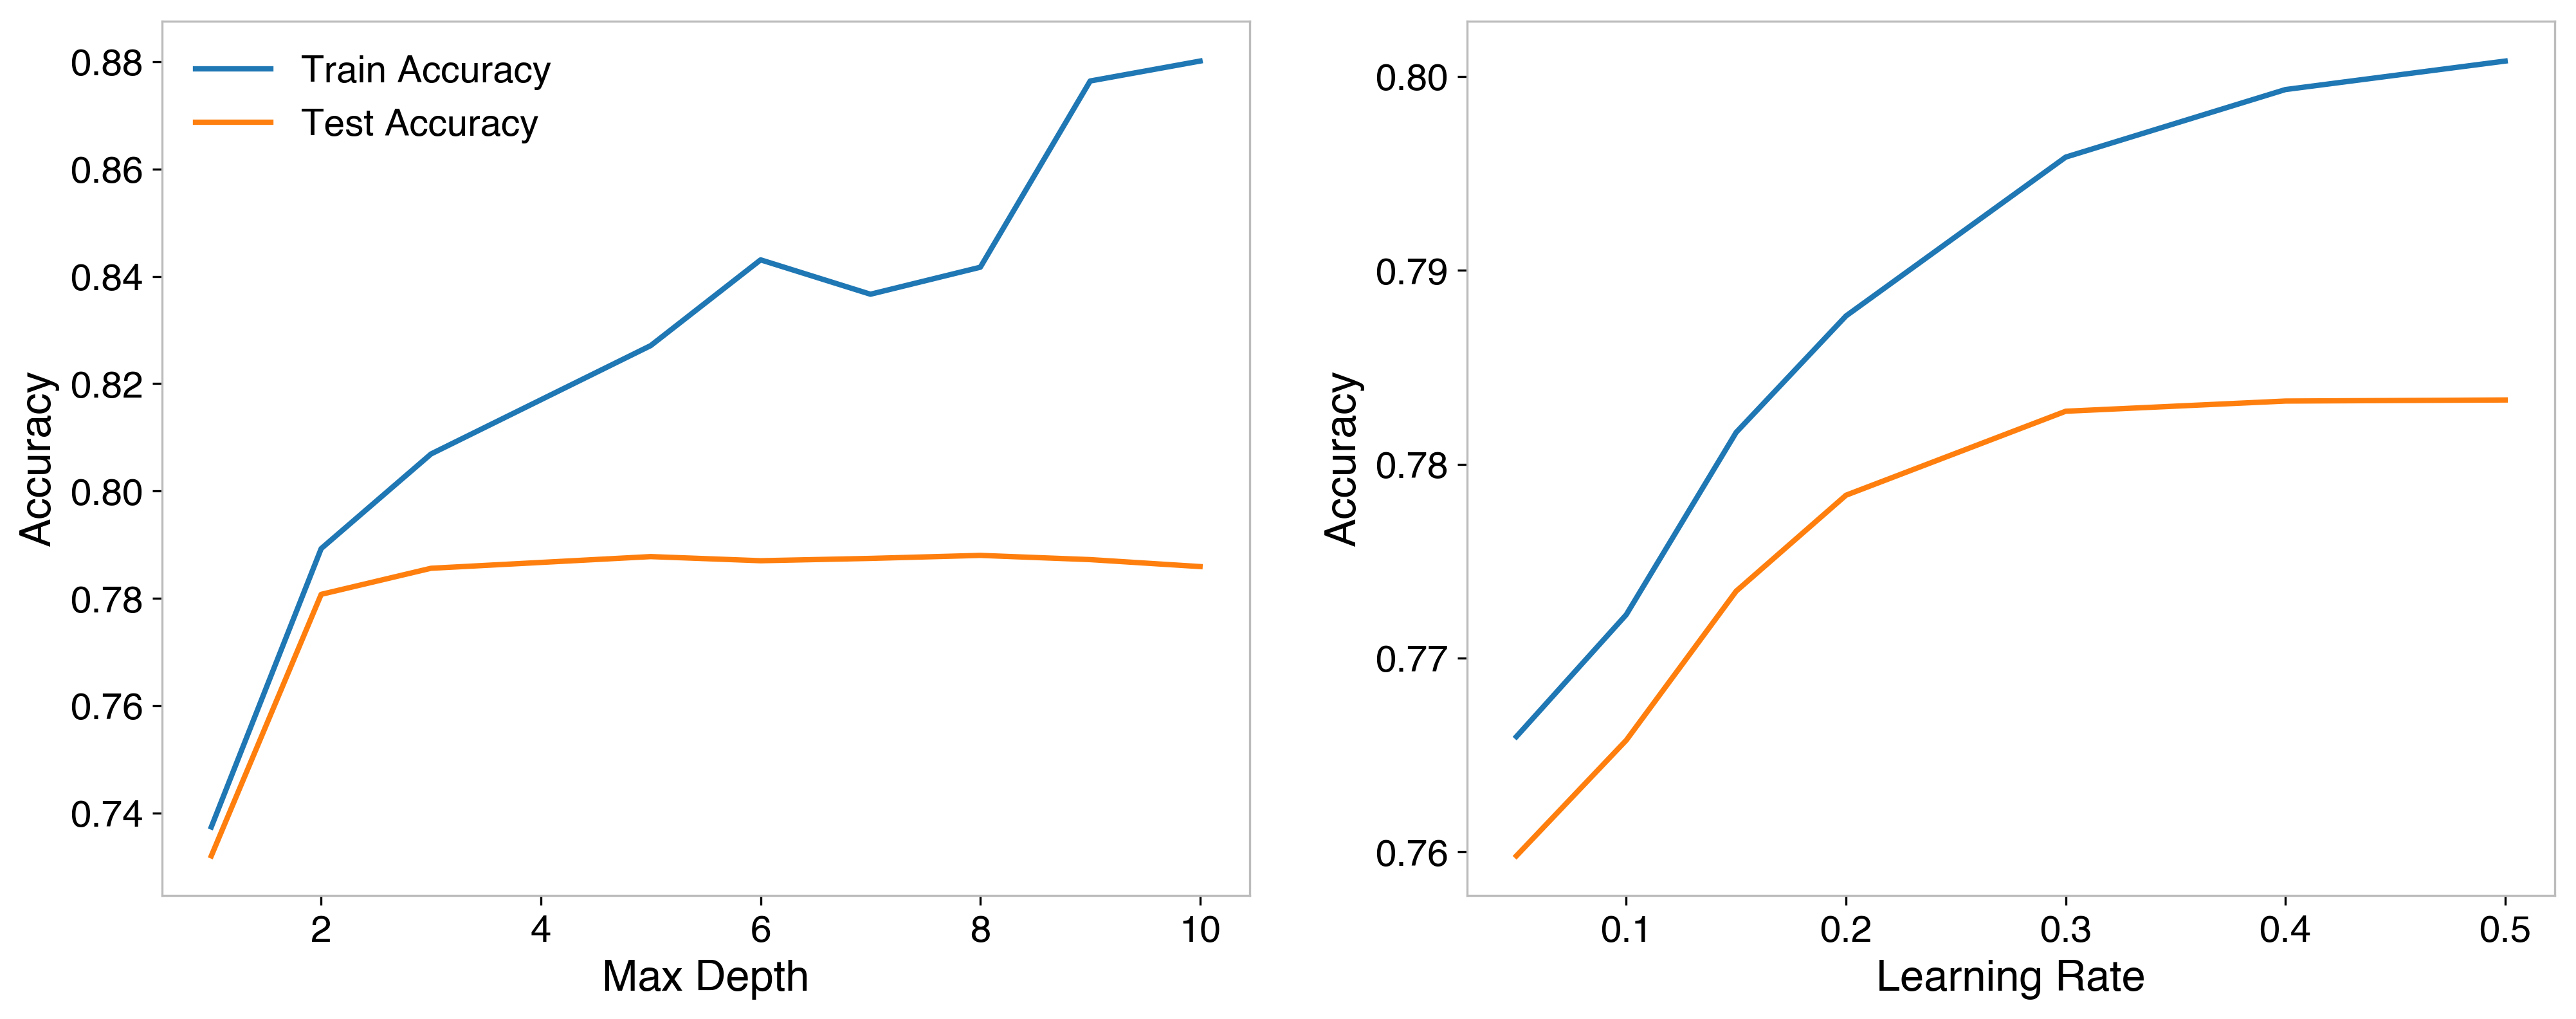 Hyperparameter optimization for max depth (left) and learning rate (right)